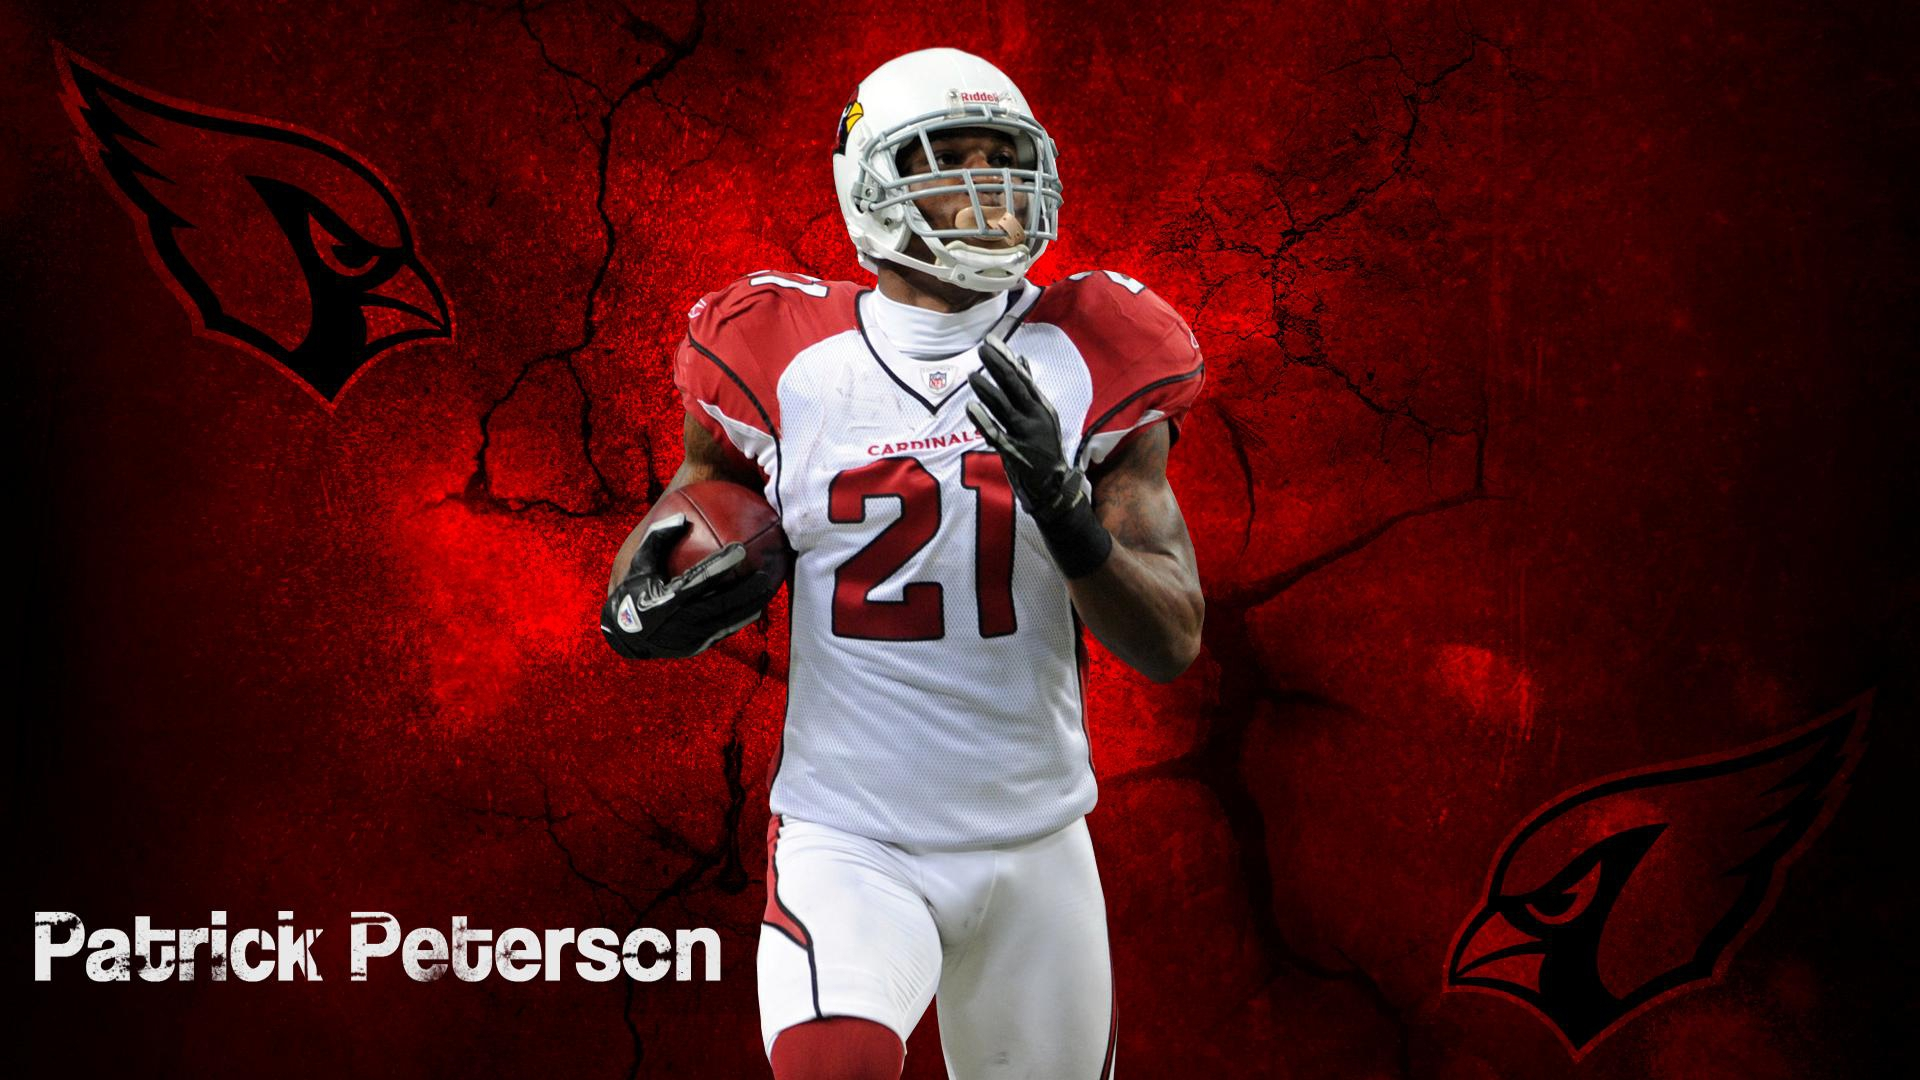 Patrick Peterson Wallpapers s Backgrounds